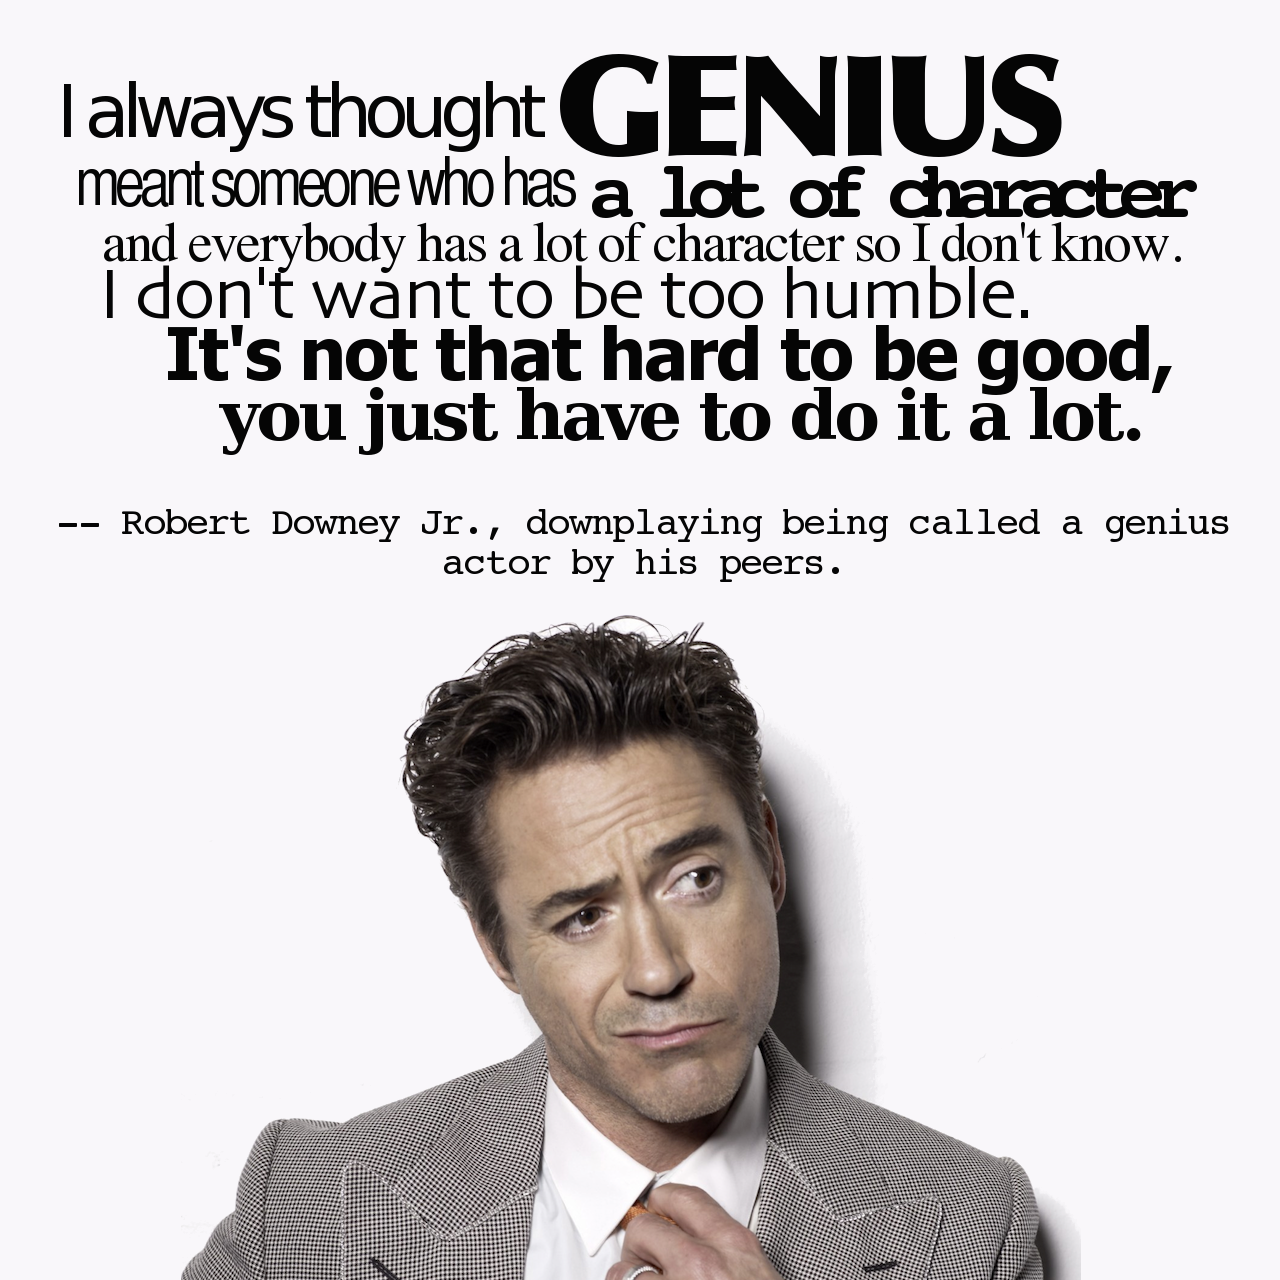 robert downey jr quotes - Google Search